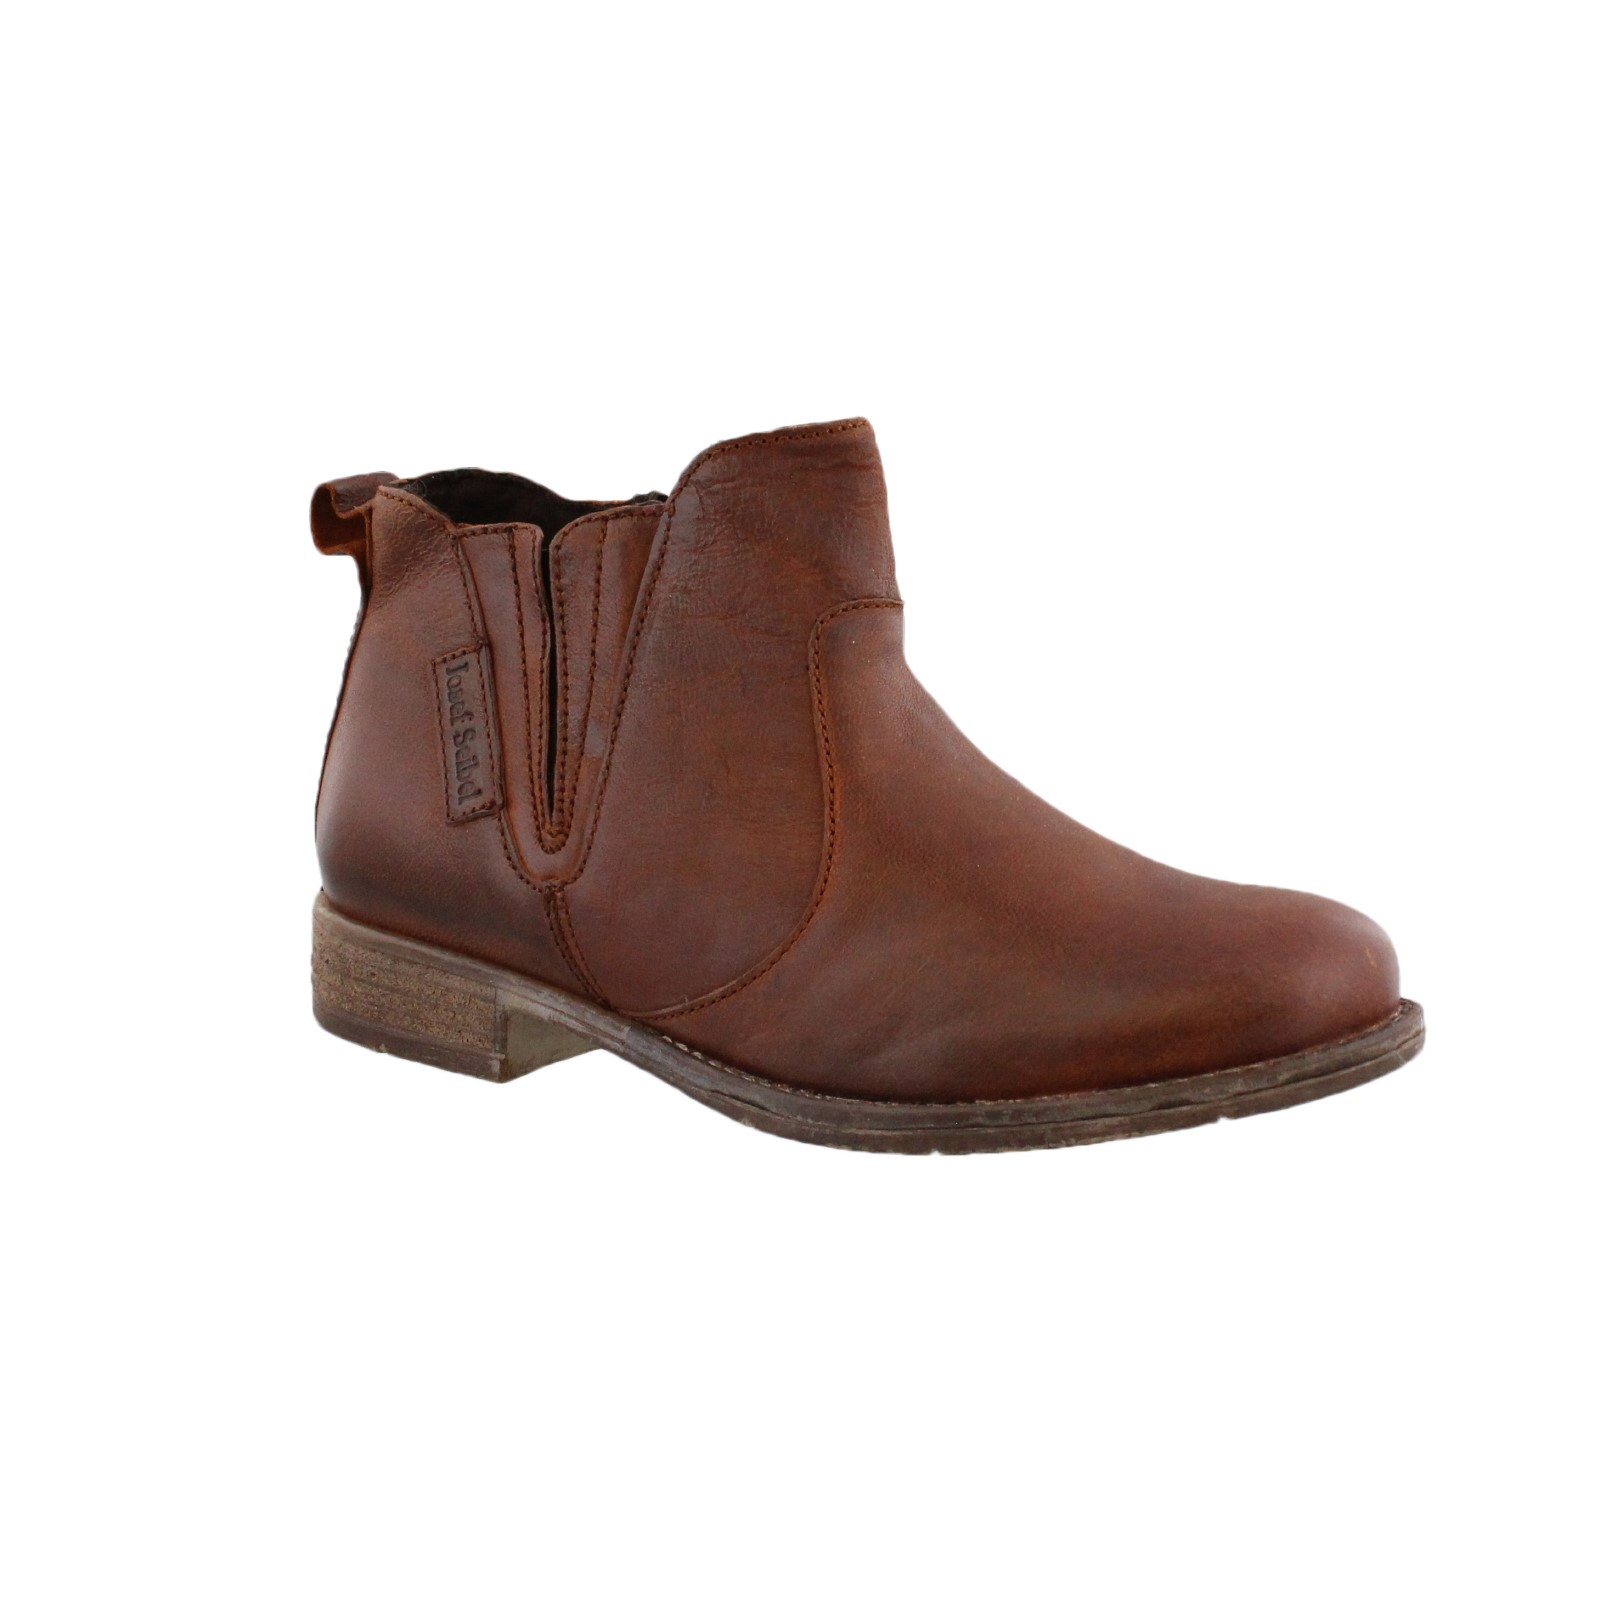 80c2e700 Next. add to favorites. Women's Josef Seibel, Sienna 45 Ankle Boots